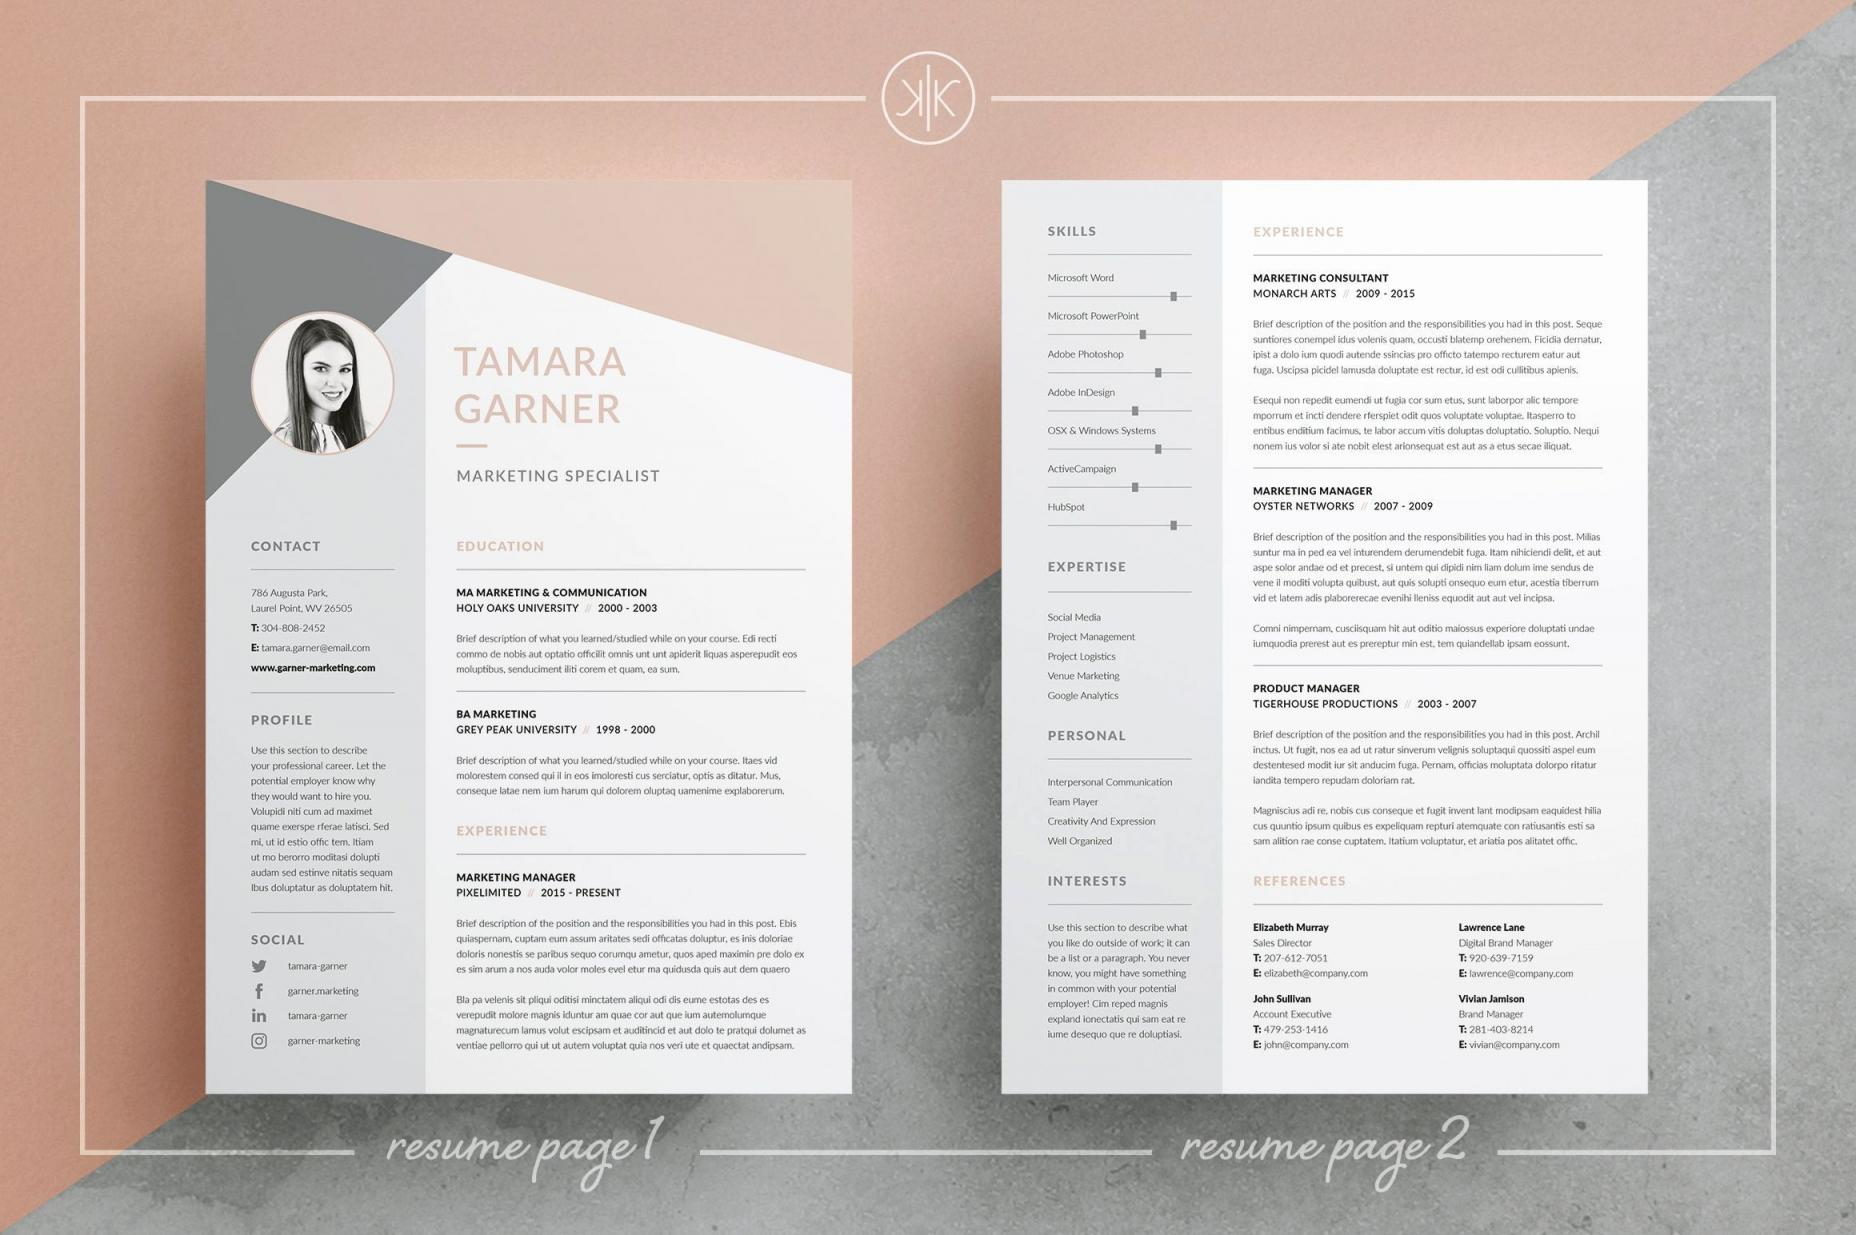 Free Resume Word Templates - Lebenslauf Download Word Genial 22 Lovely Free Resume Template